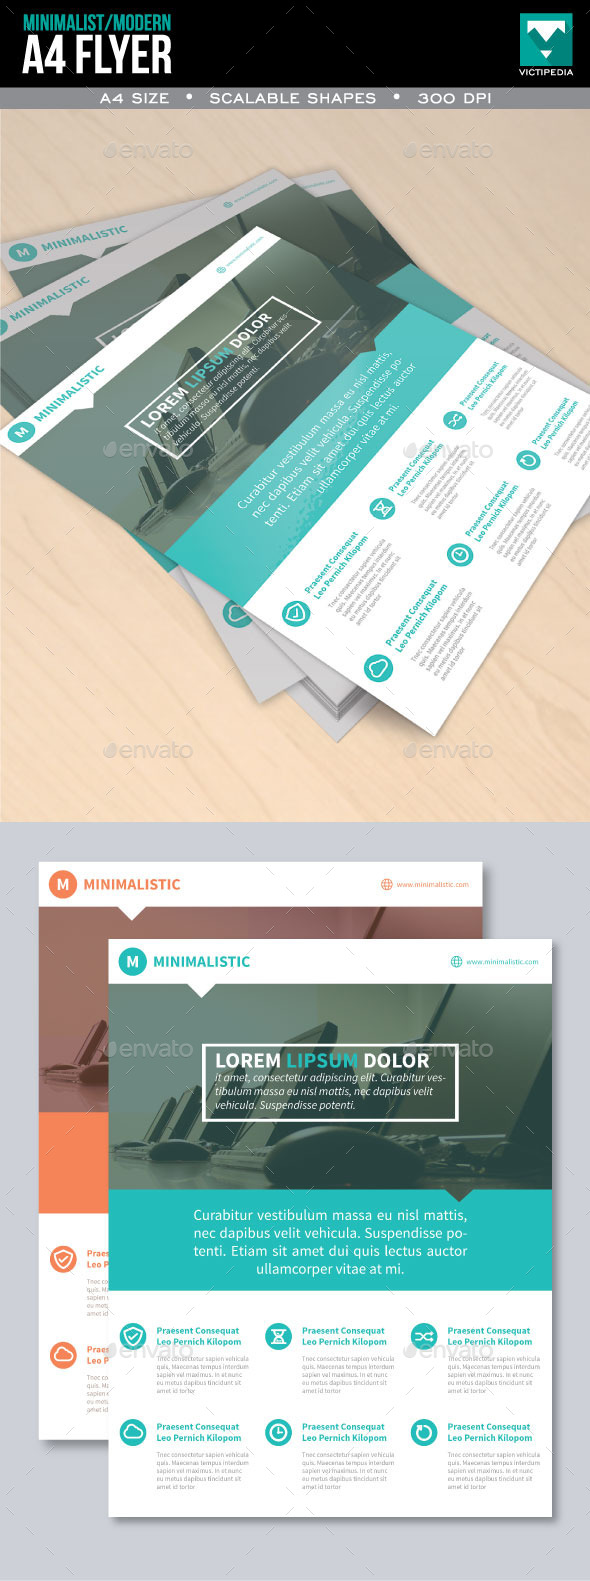 Minimalist and Modern Flyer - Flyers Print Templates